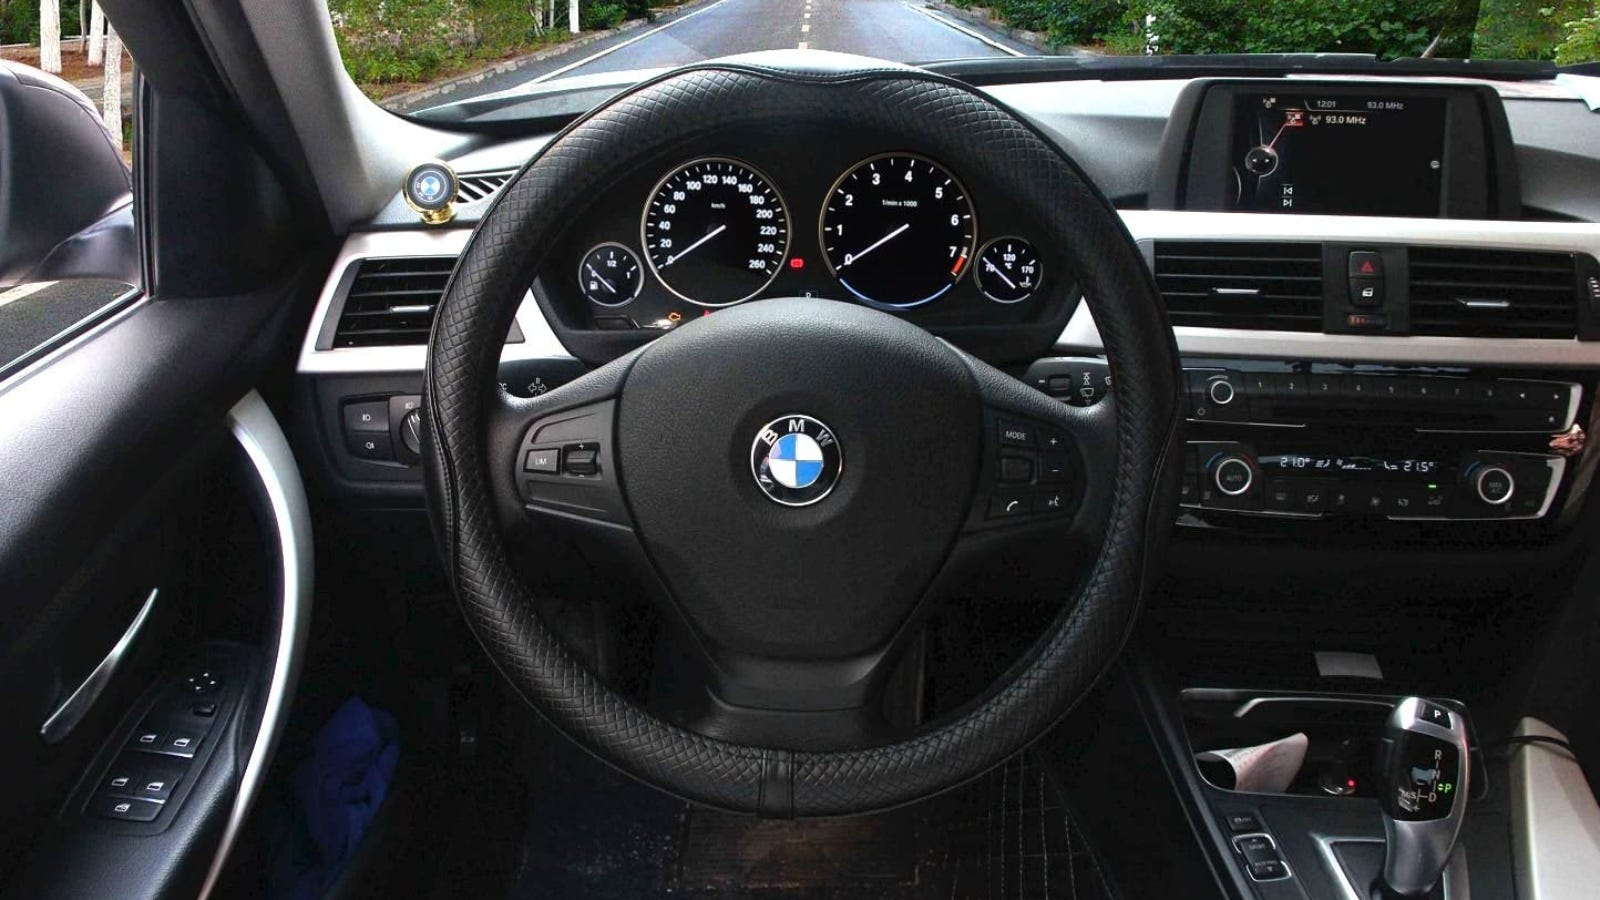 A steering wheel with a black leather cover.